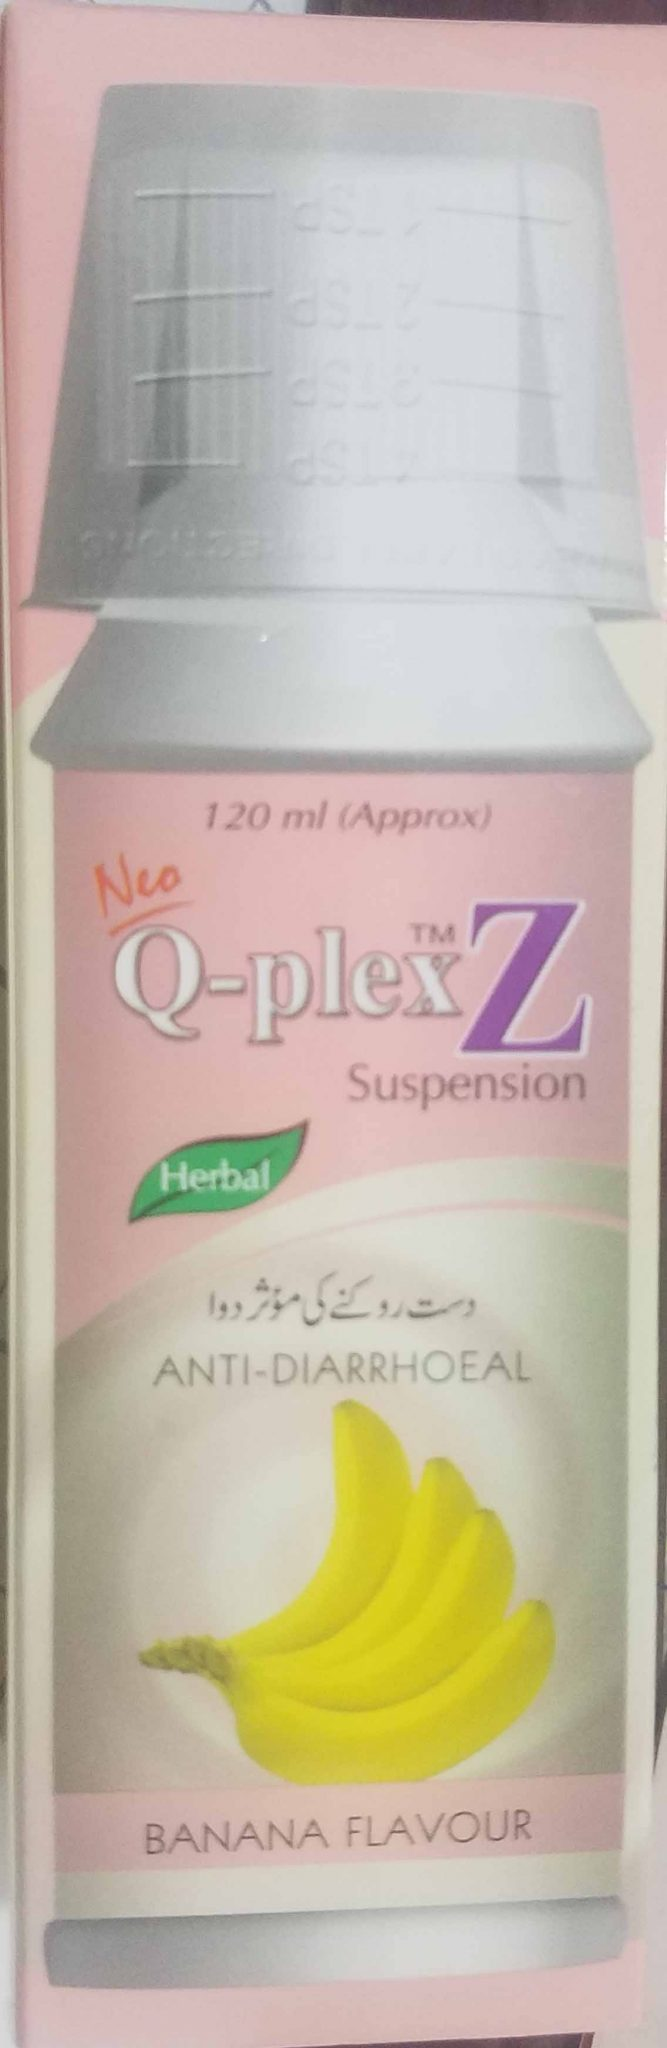 Q-PLEX Z Syrup 120ml Is Used For Diarrhea In Baby and Growth